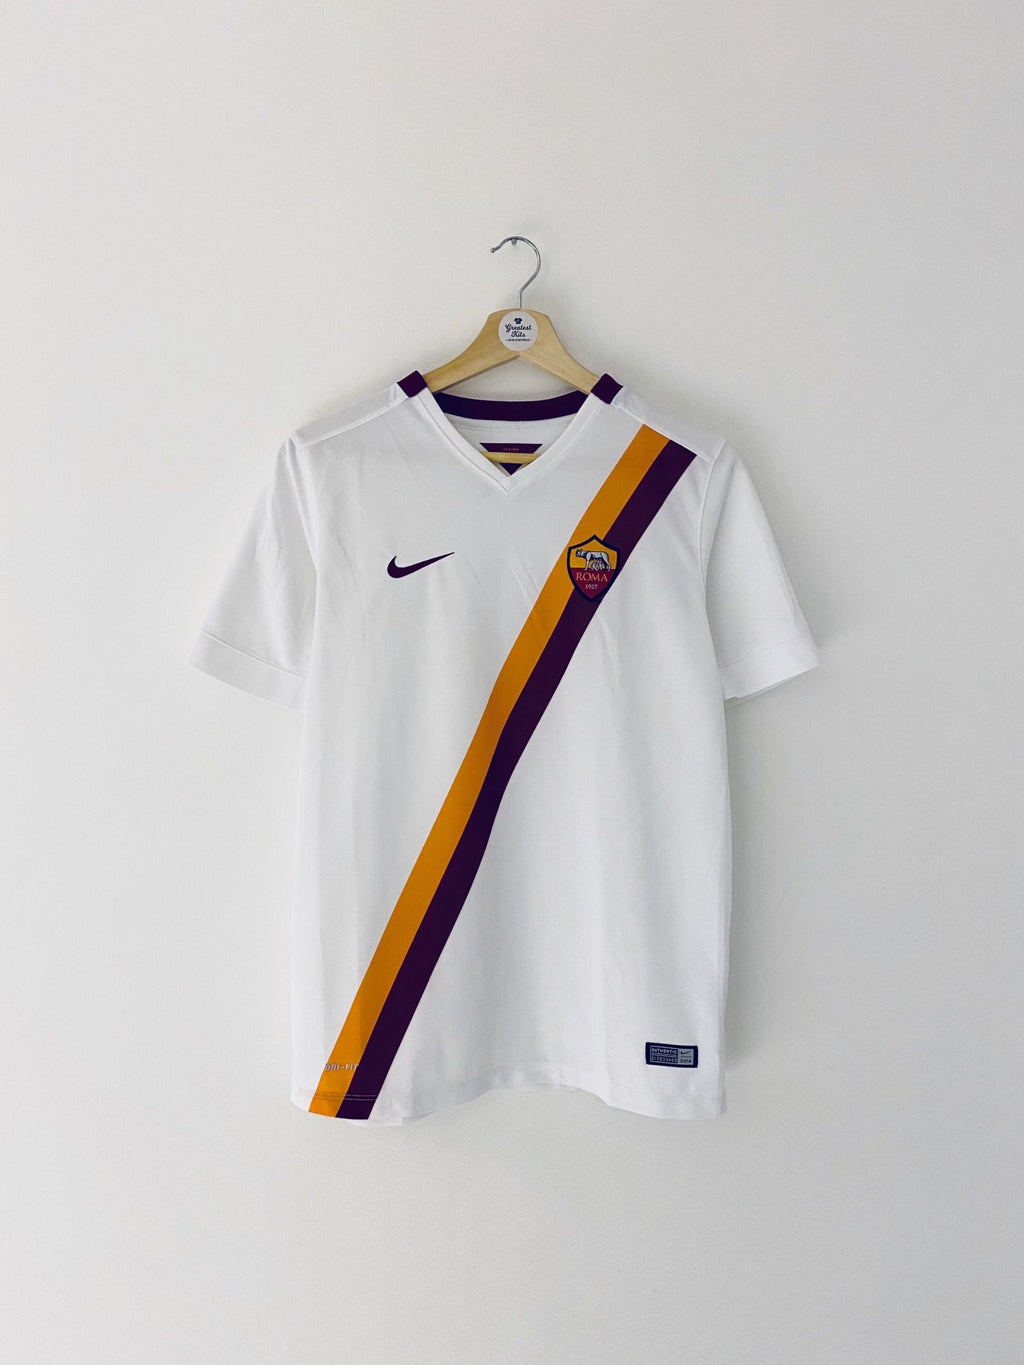 2014/15 Roma Away Shirt (XL.Boys) 7/10